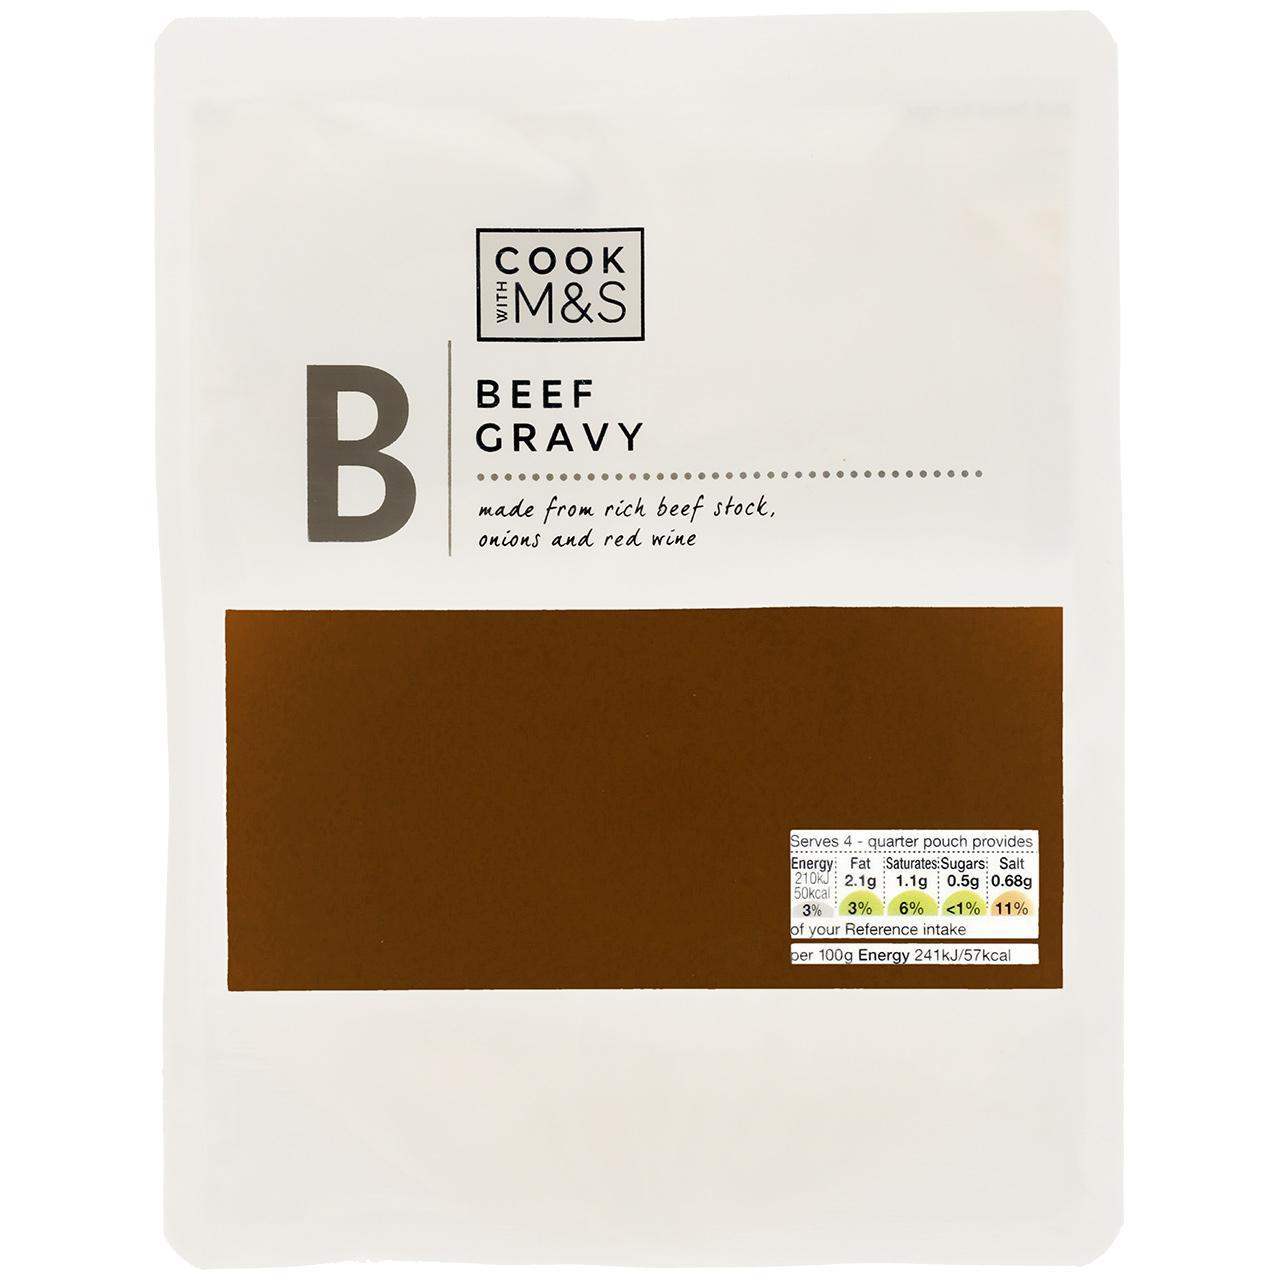 Cook With M&S Beef Gravy 350g